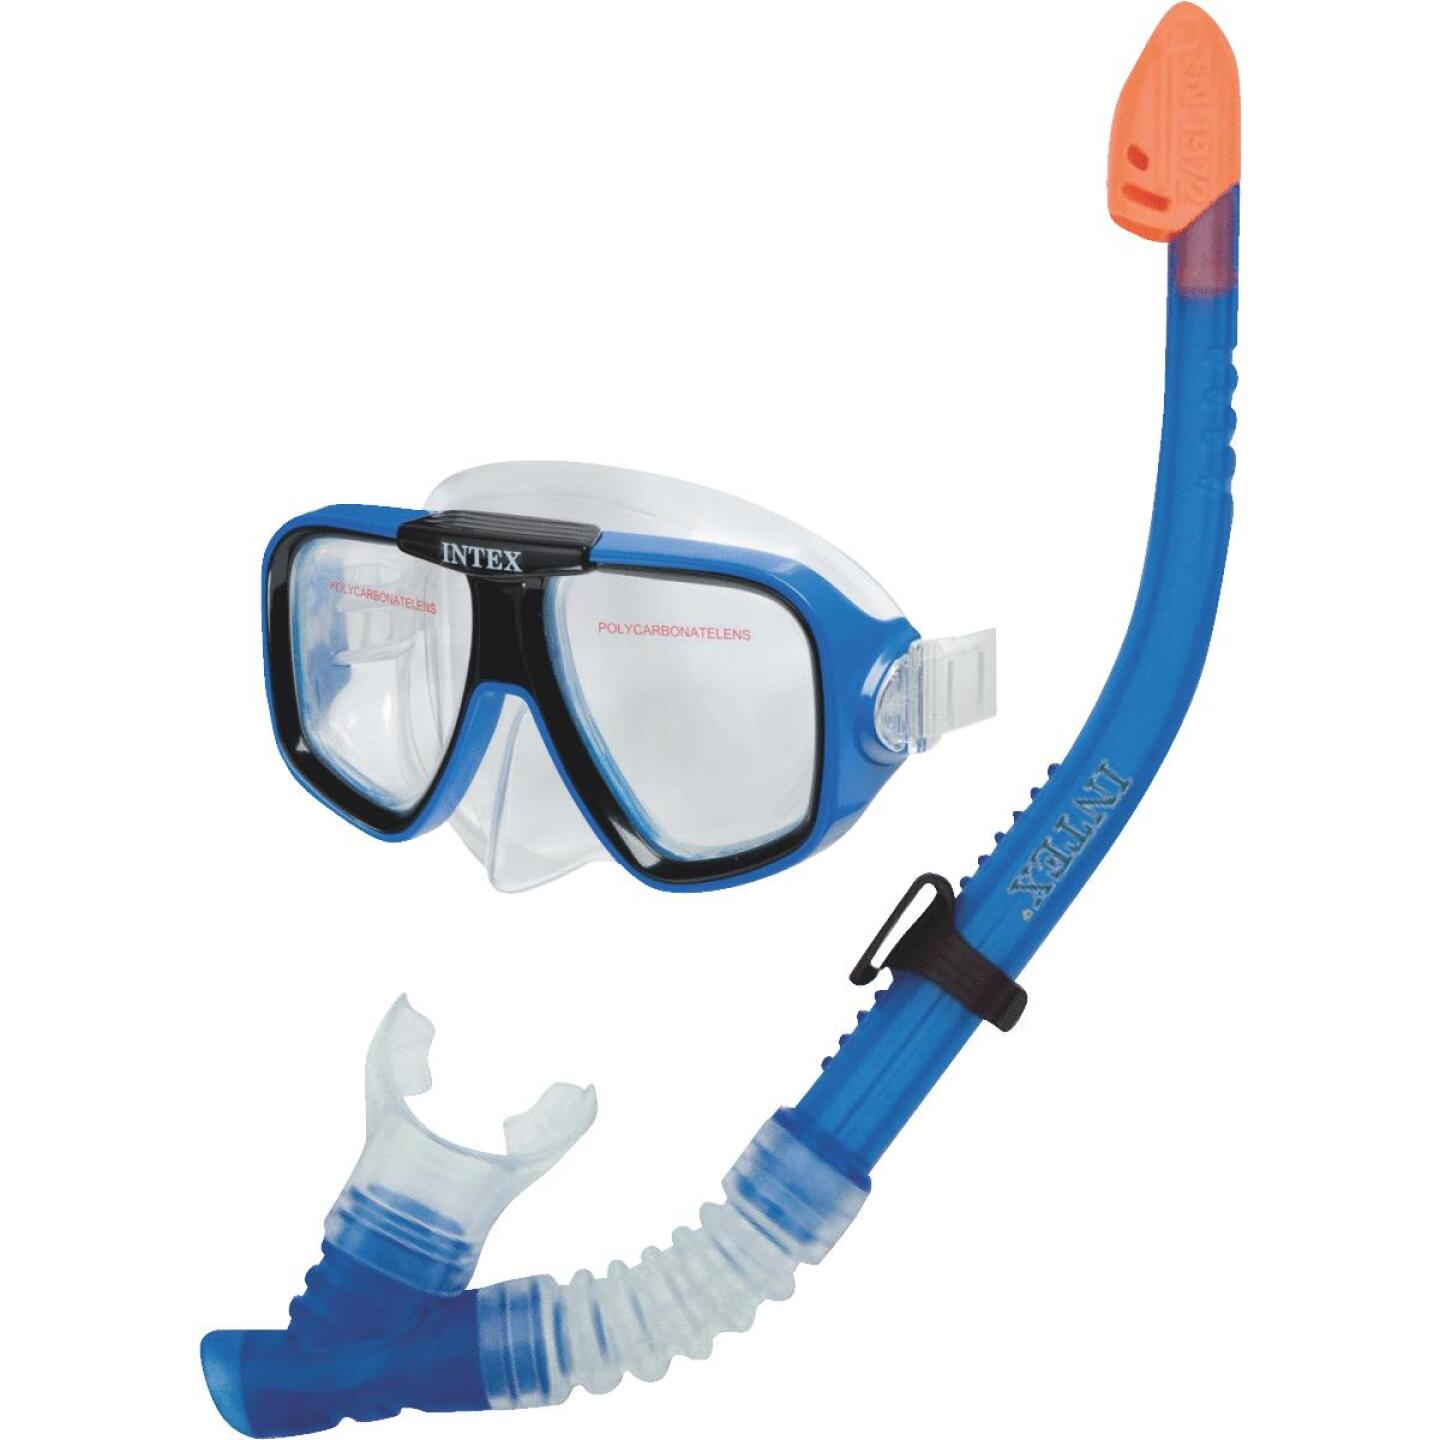 Intex Reef Rider Swim Set Image 1